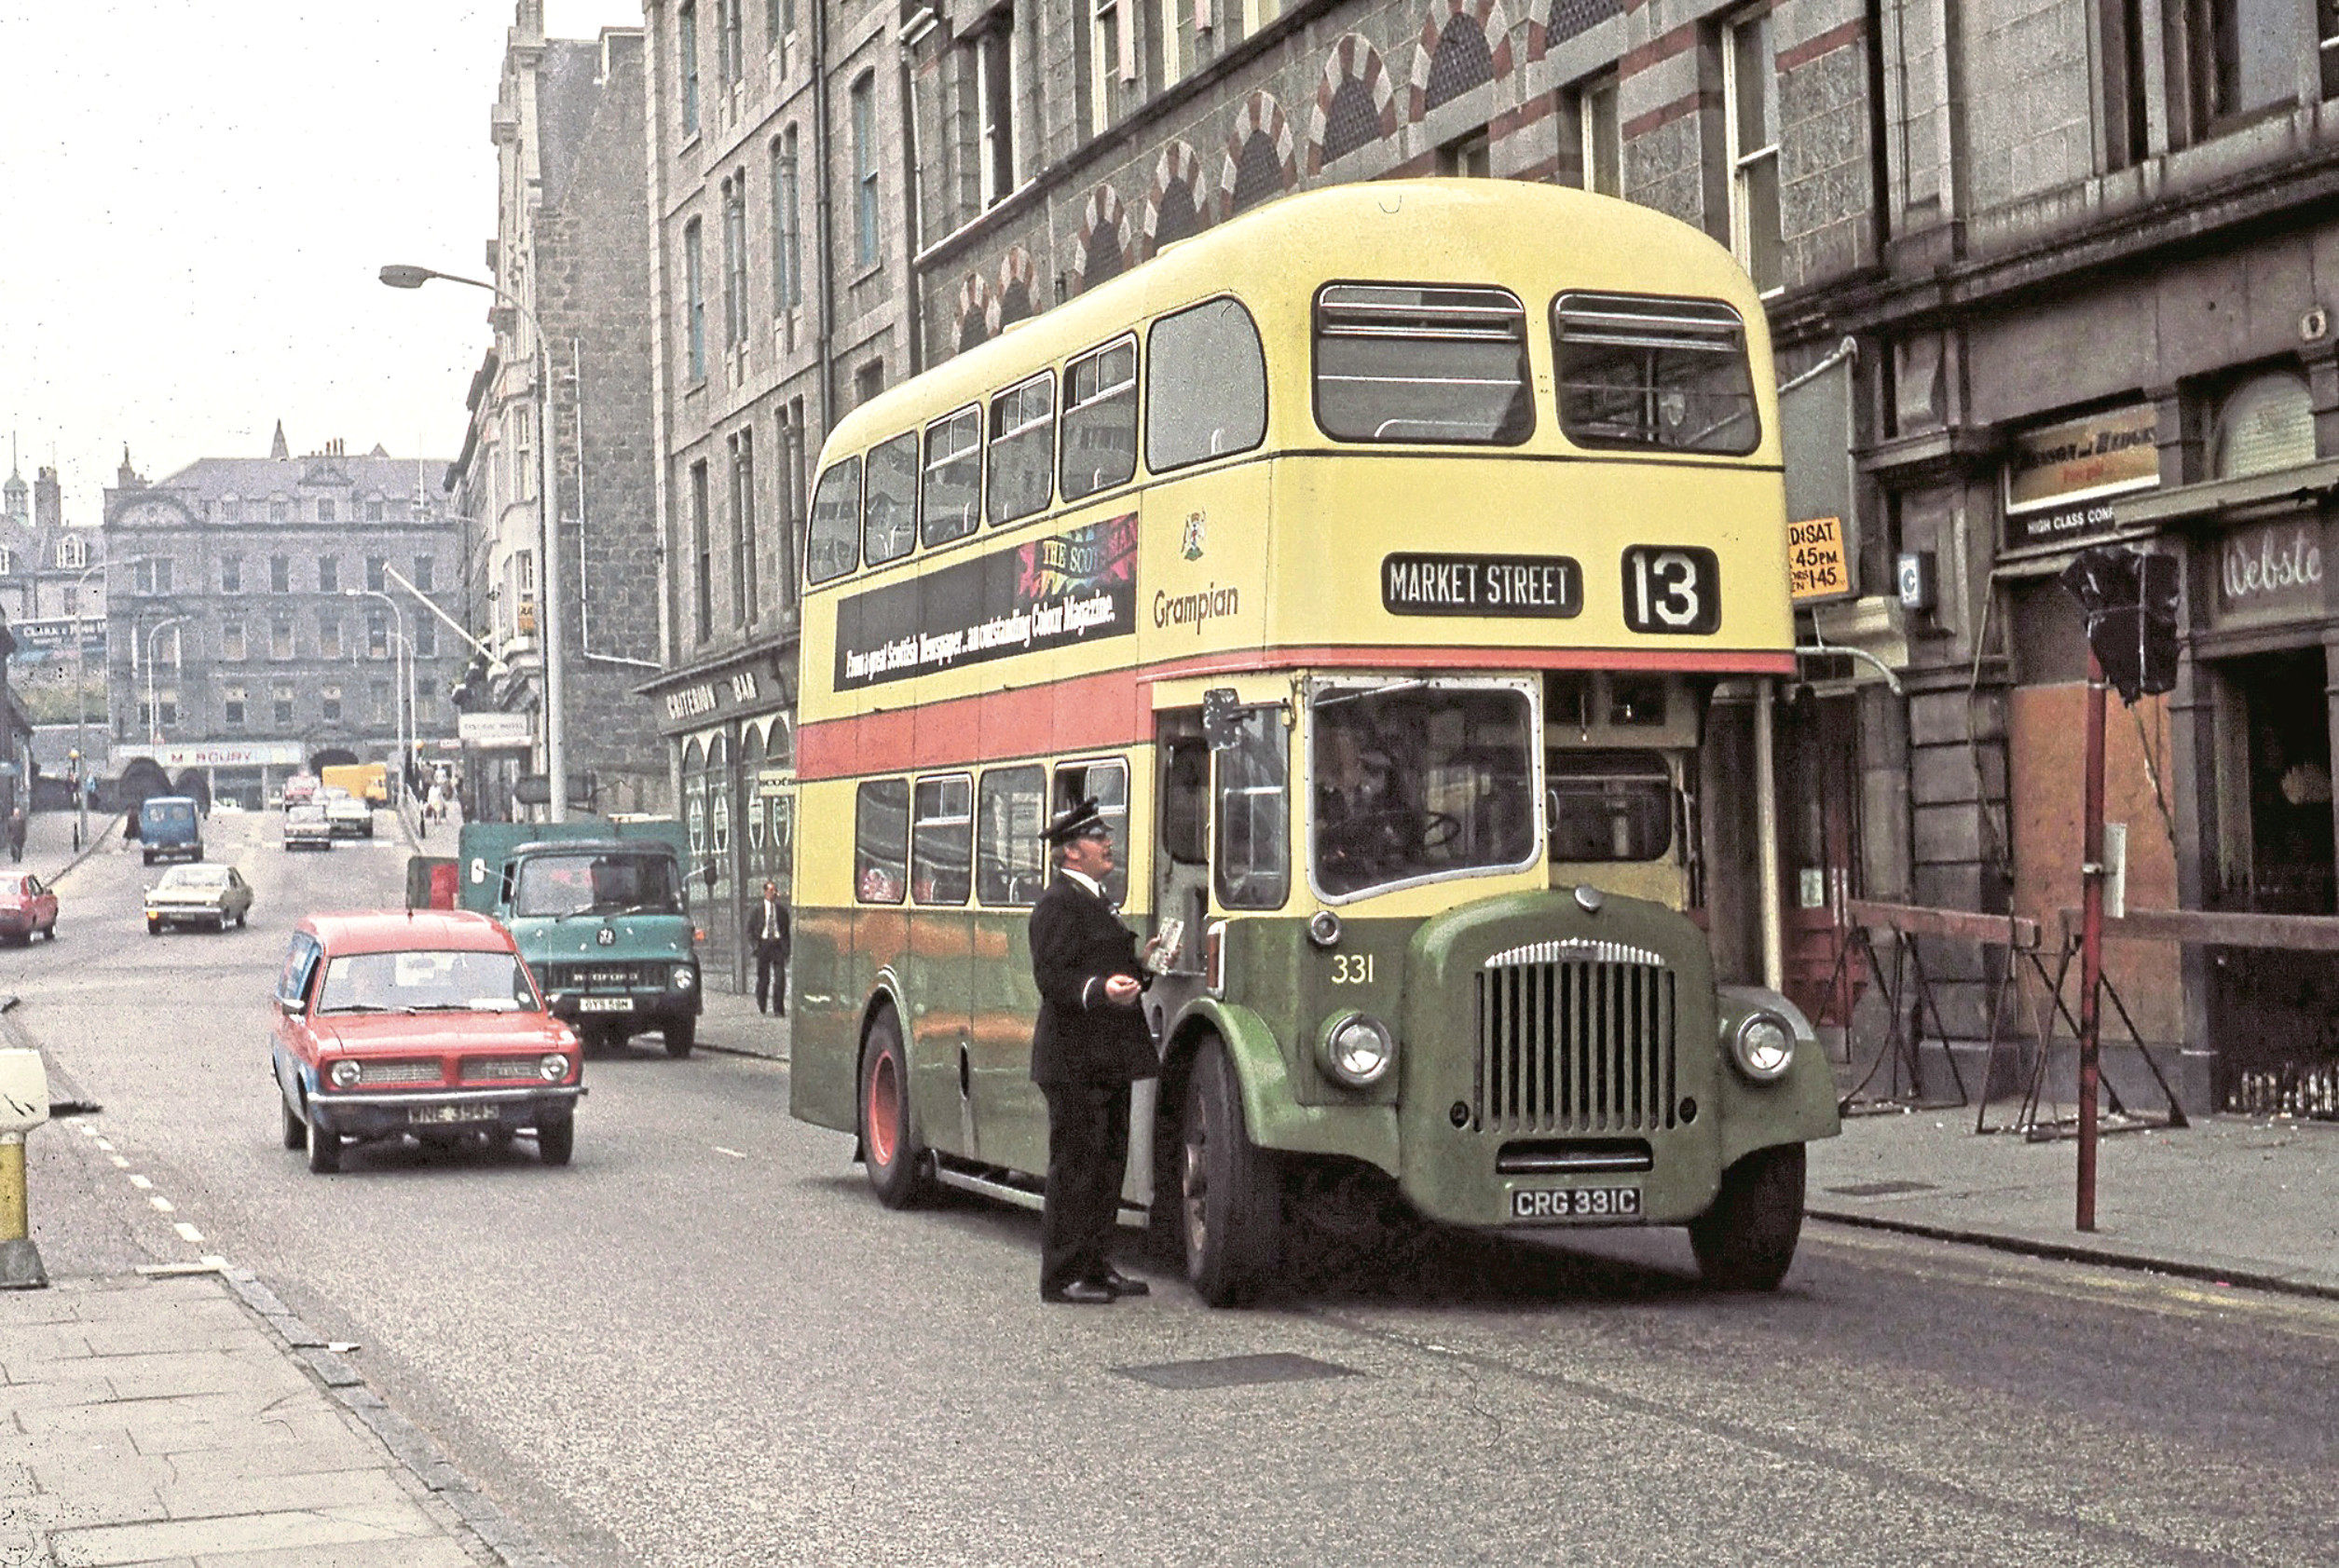 Bus drivers could expect to be kept on their toes at any point along their route. This is one of the many images in the book